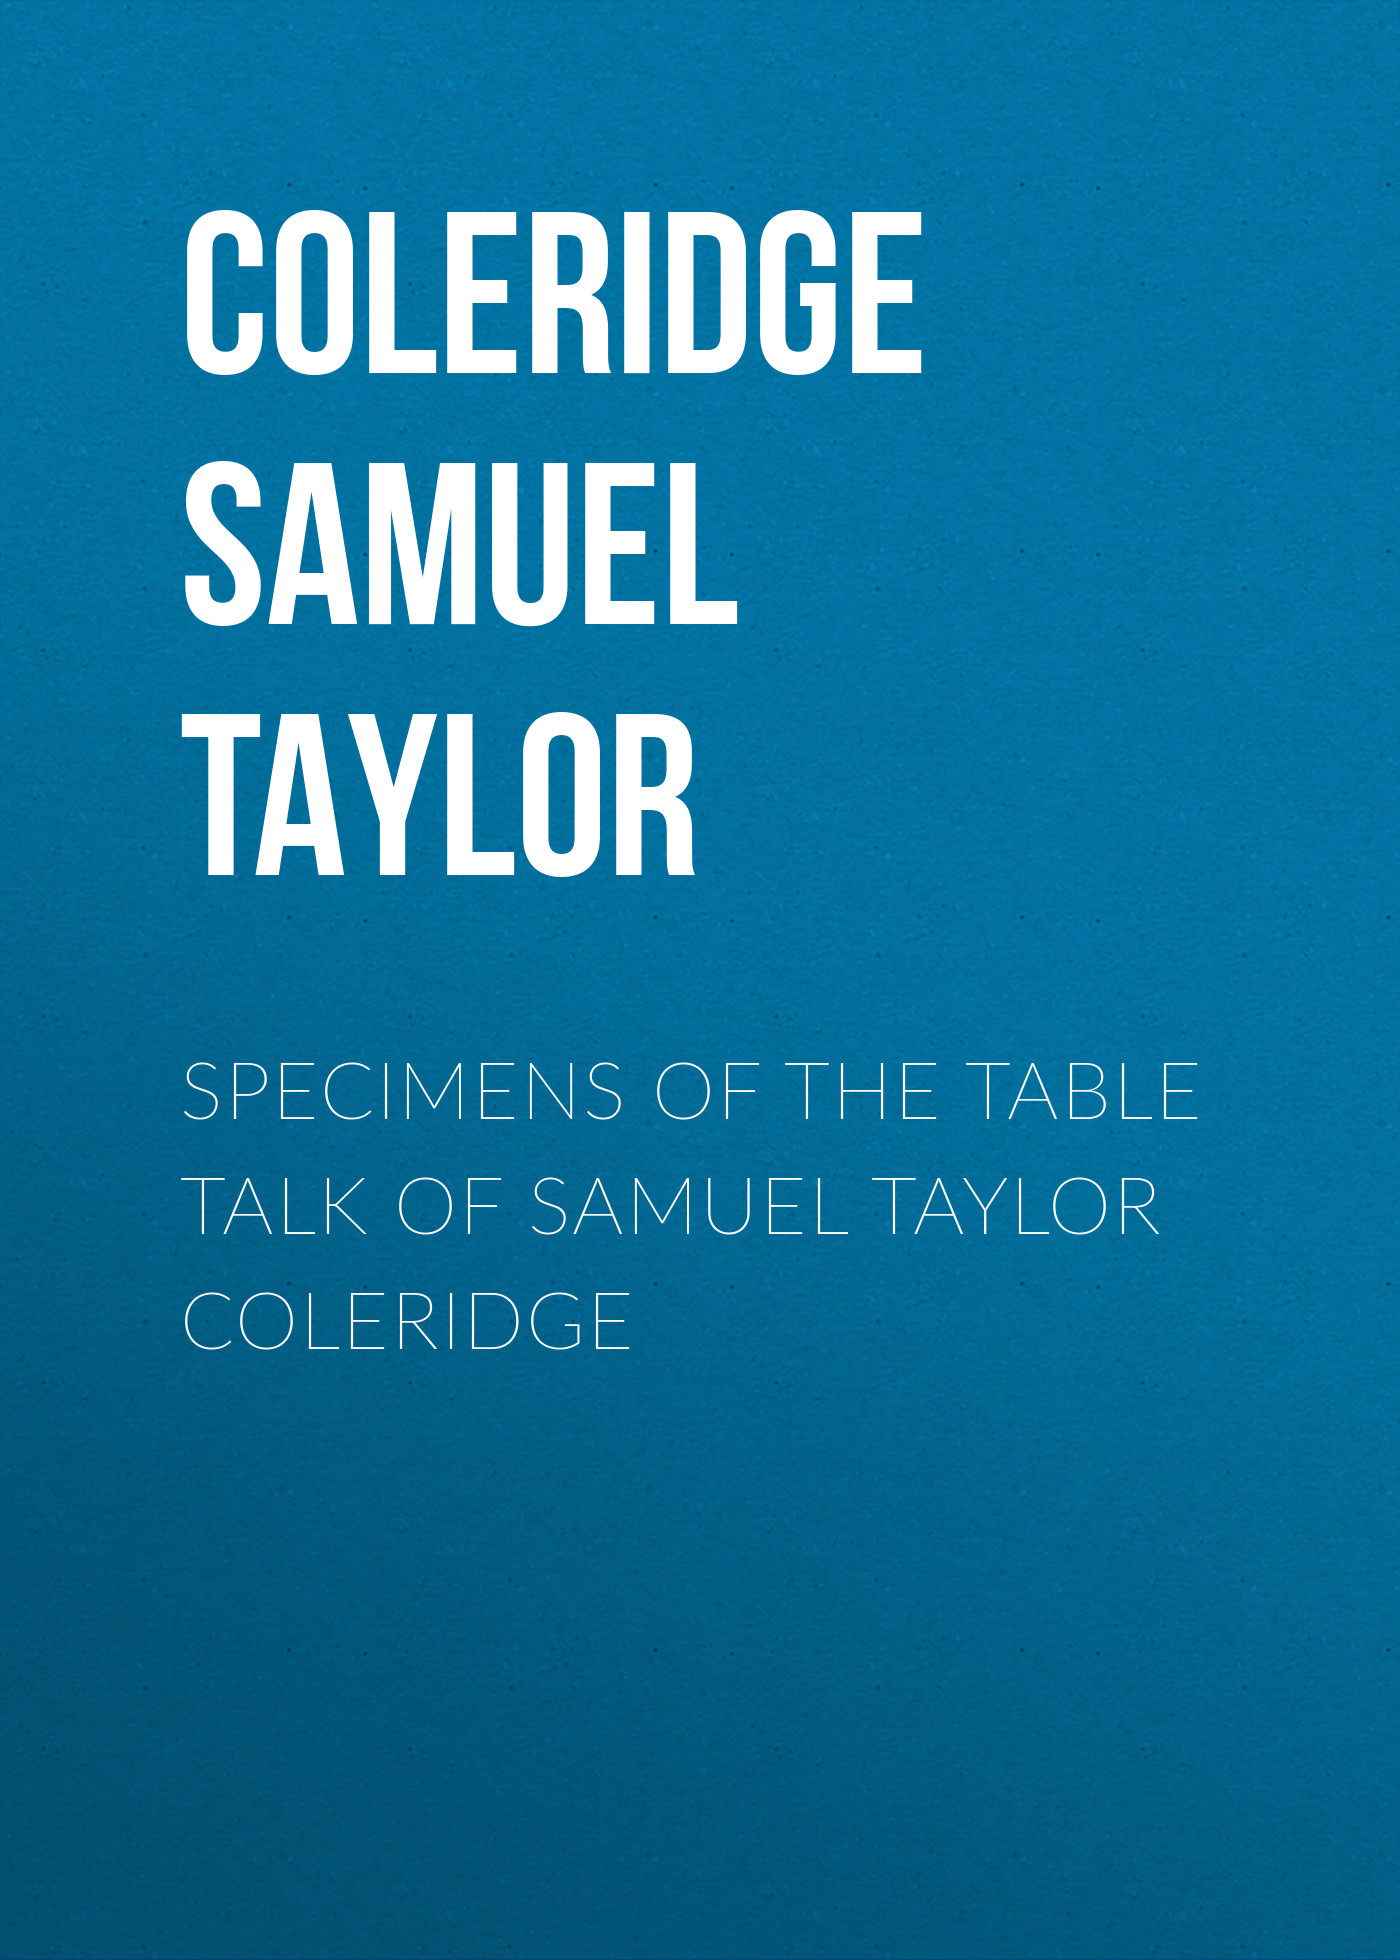 Coleridge Samuel Taylor Specimens of the Table Talk of Samuel Taylor Coleridge